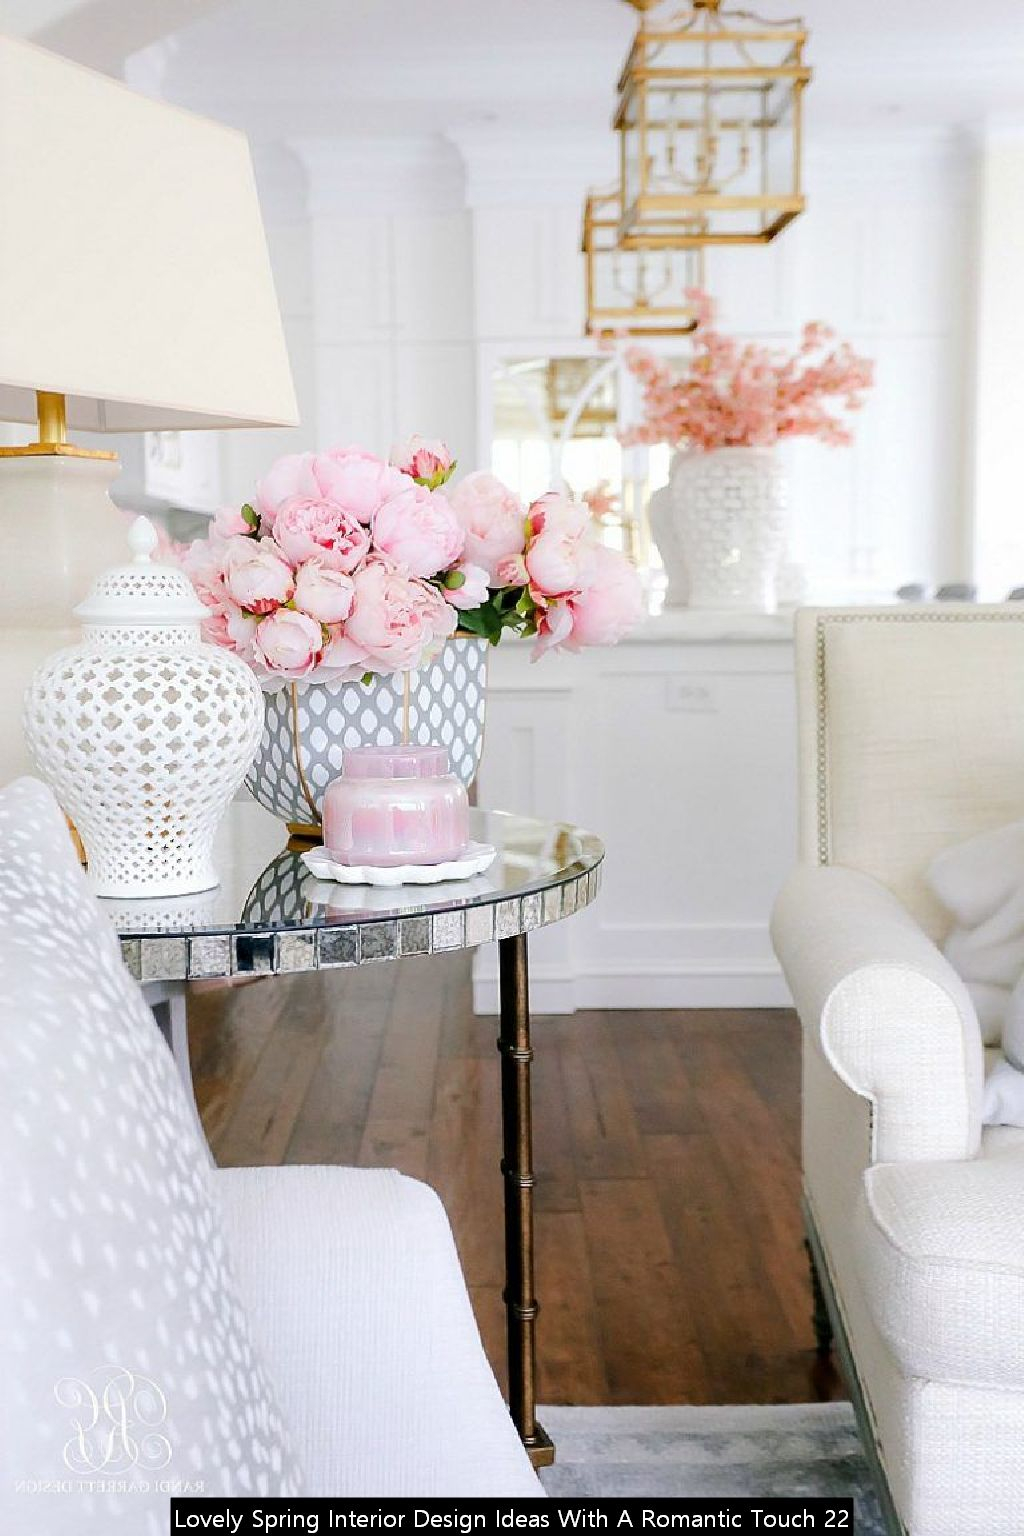 Lovely Spring Interior Design Ideas With A Romantic Touch 22